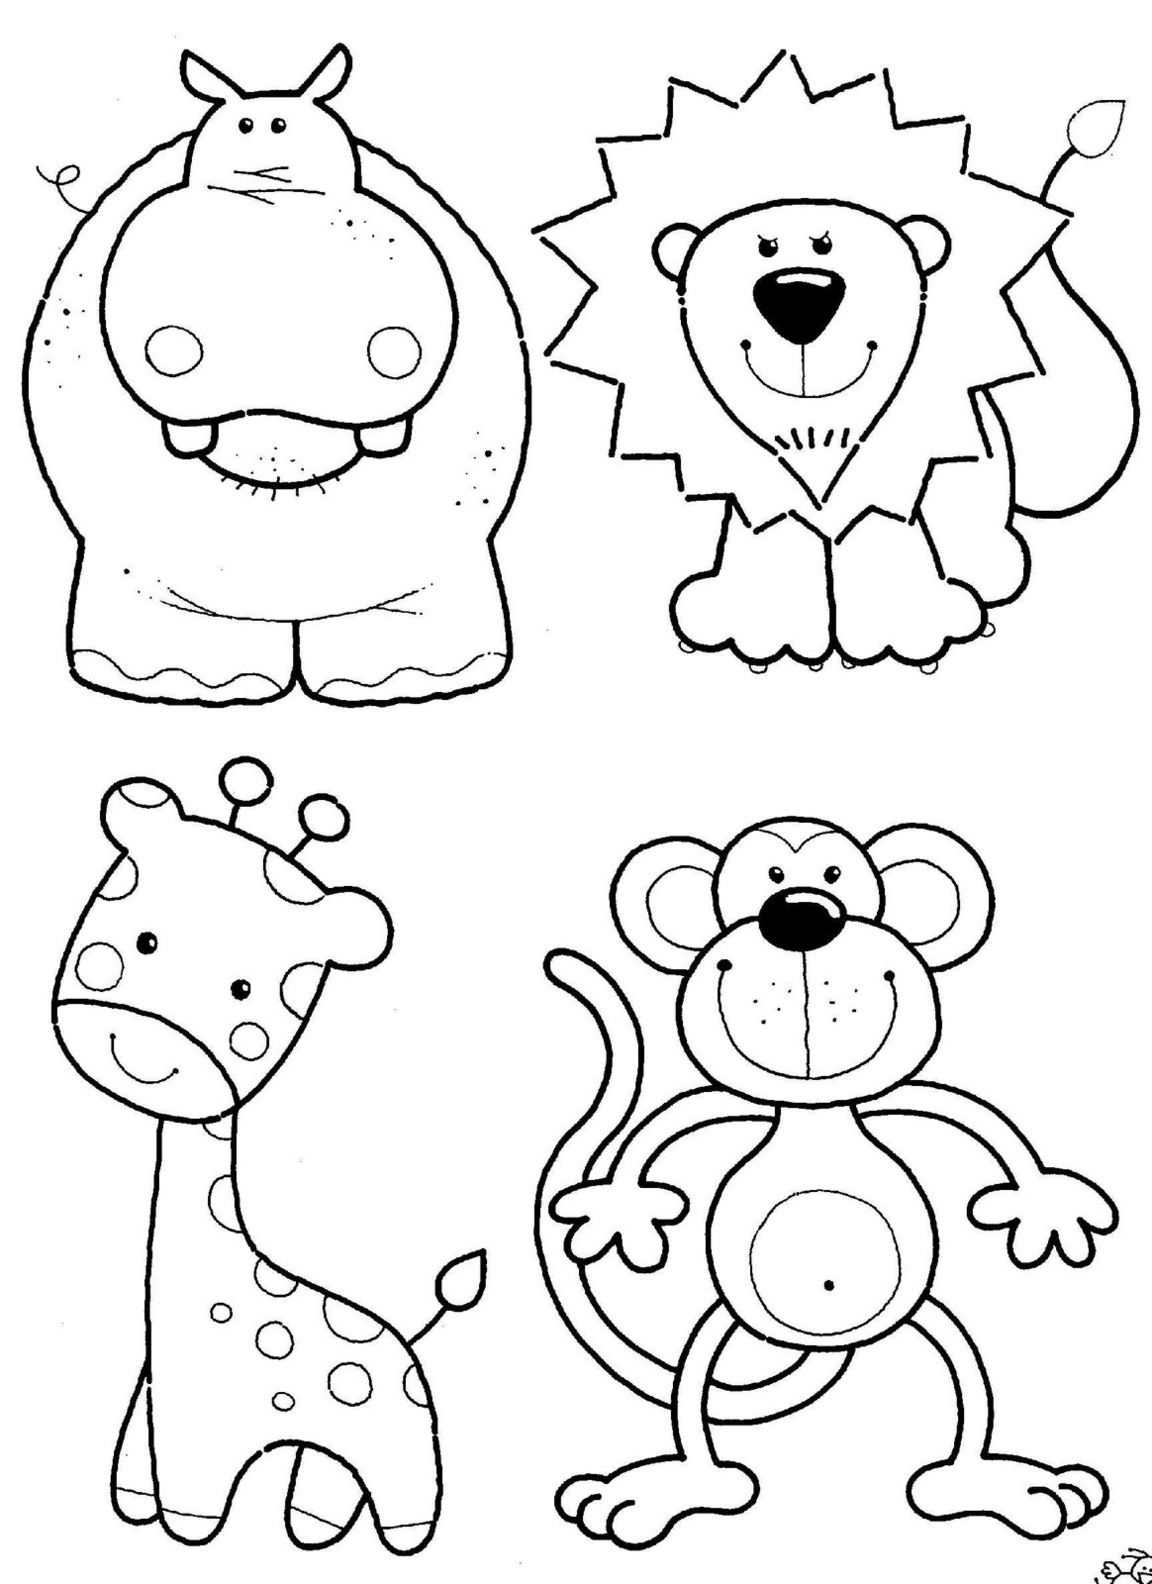 zoo animal coloring pages for preschool fun in jungle coloring page safari animals jungle for zoo preschool animal coloring pages